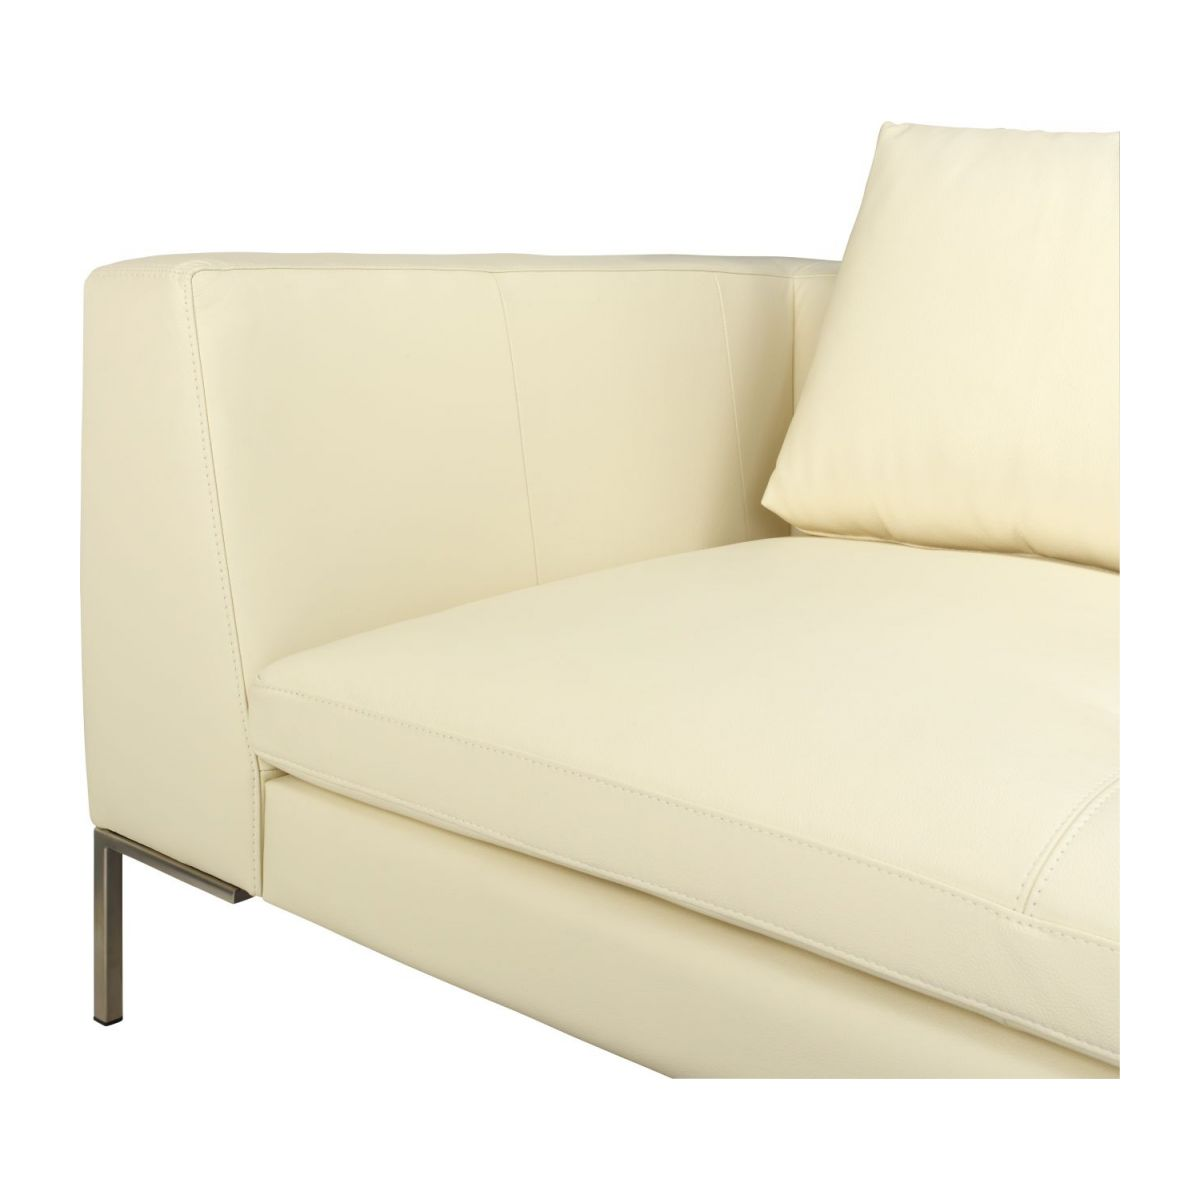 3 seater sofa in Eton veined leather, cream n°6